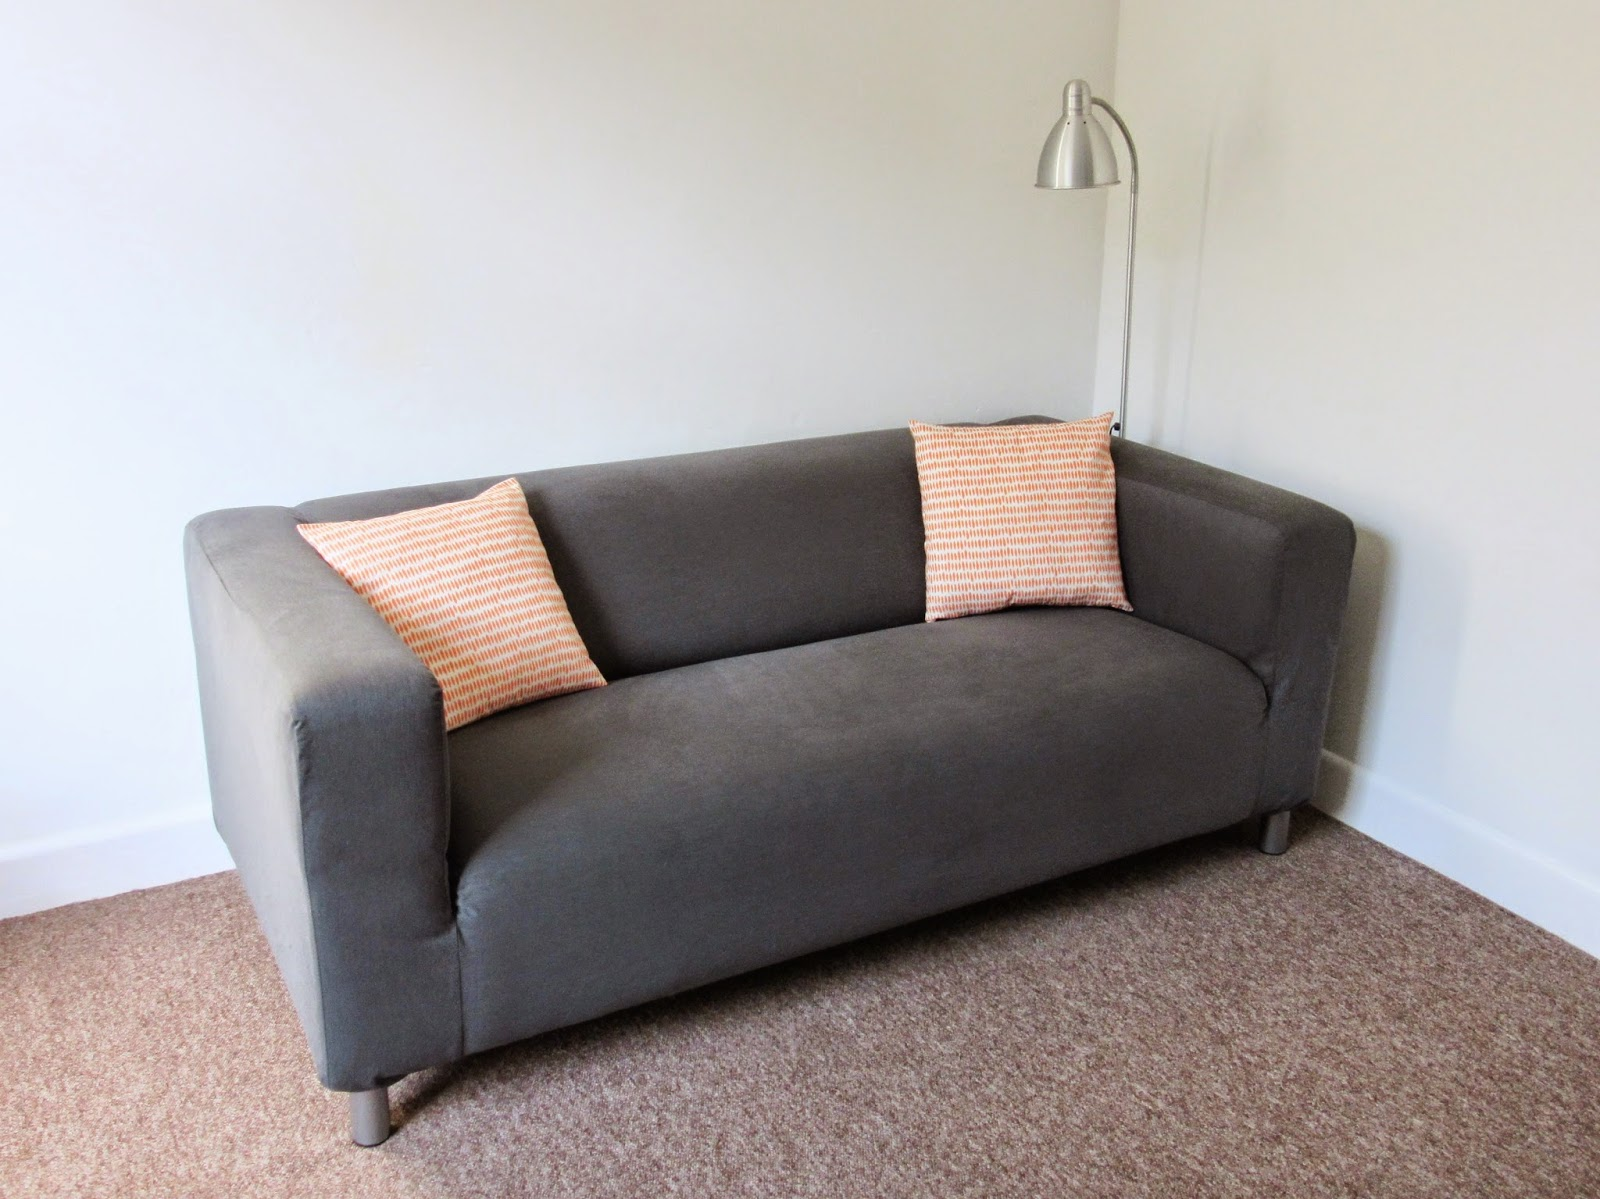 Klippan ikea sofa the ultimate ikea klippan loveseat sofa review thesofa - Klippan sofa ikea ...